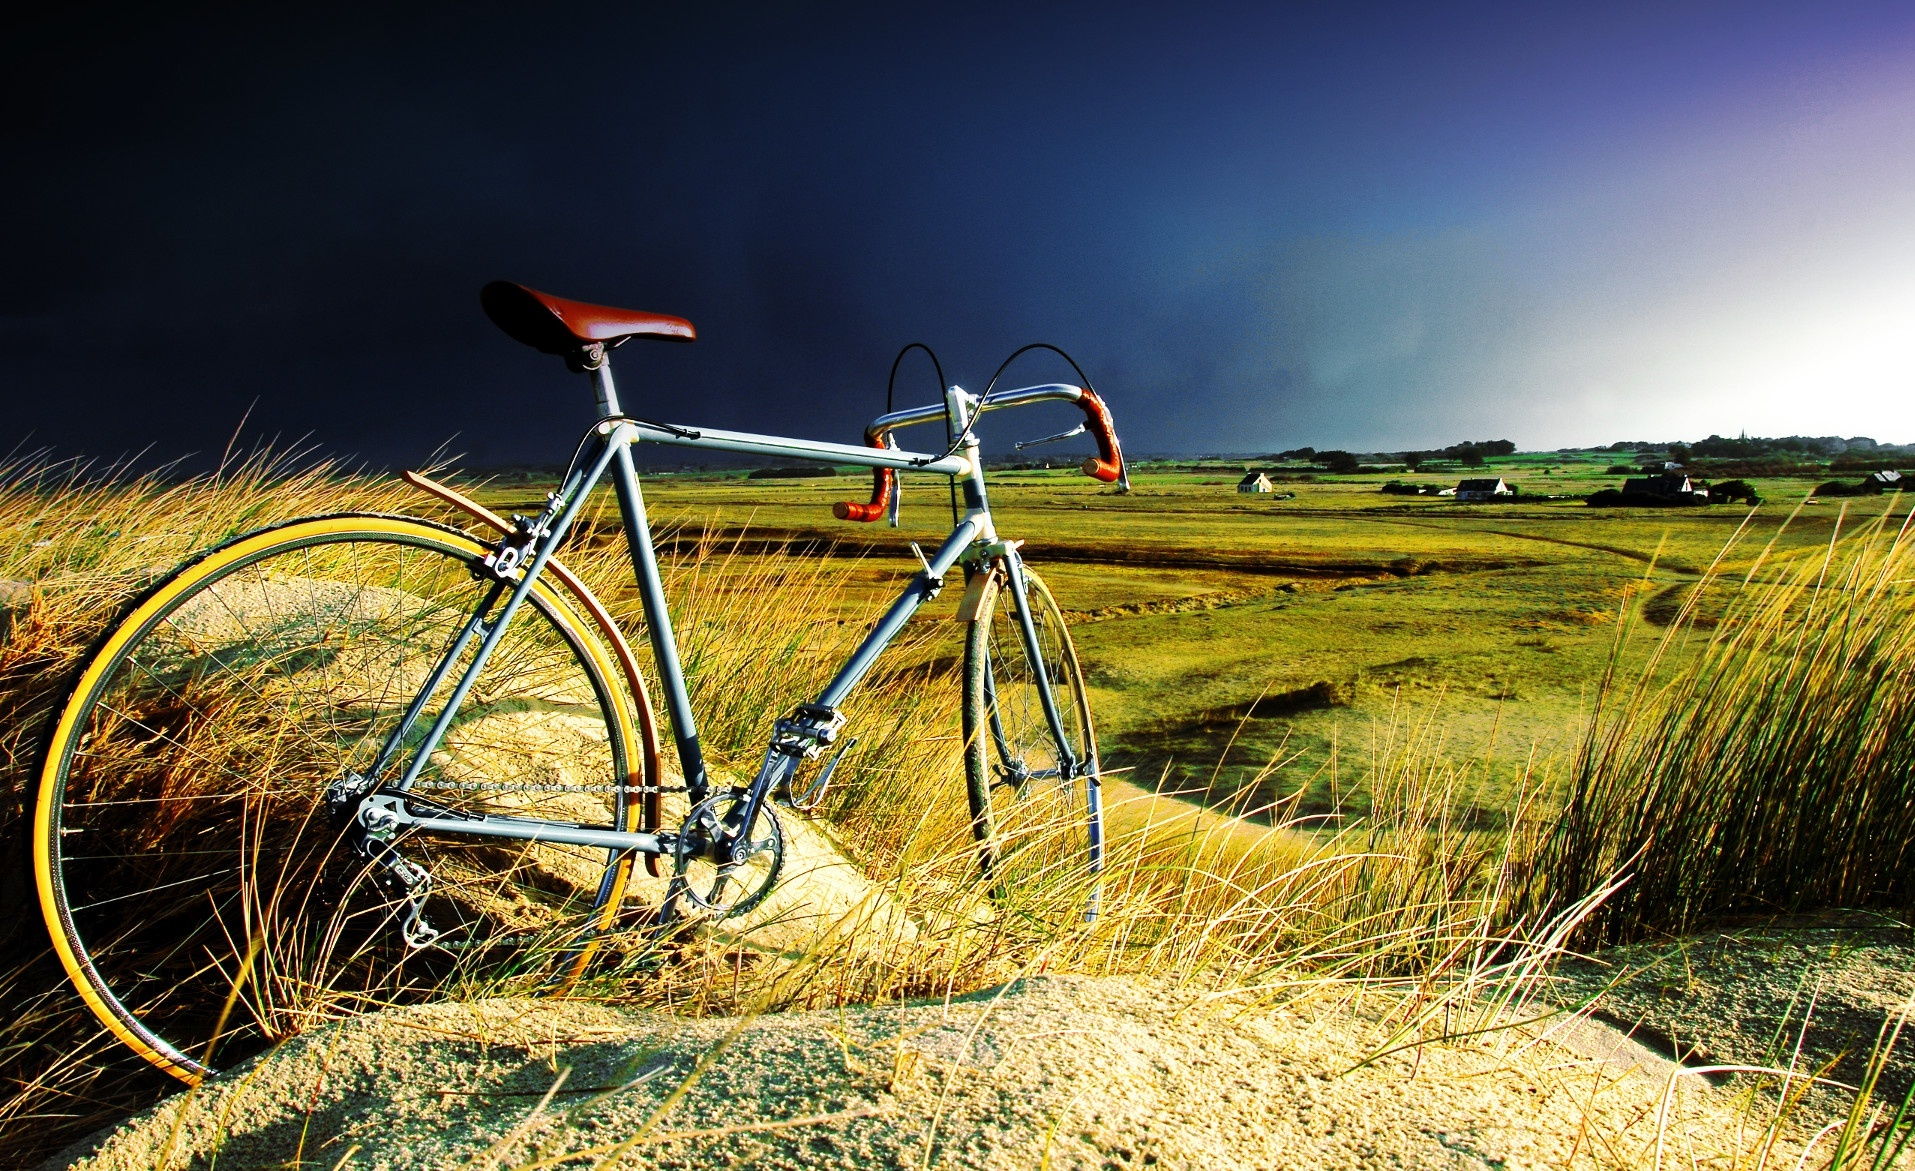 New Bicycle Wallpapers Hd Images All Hd Wallpapers